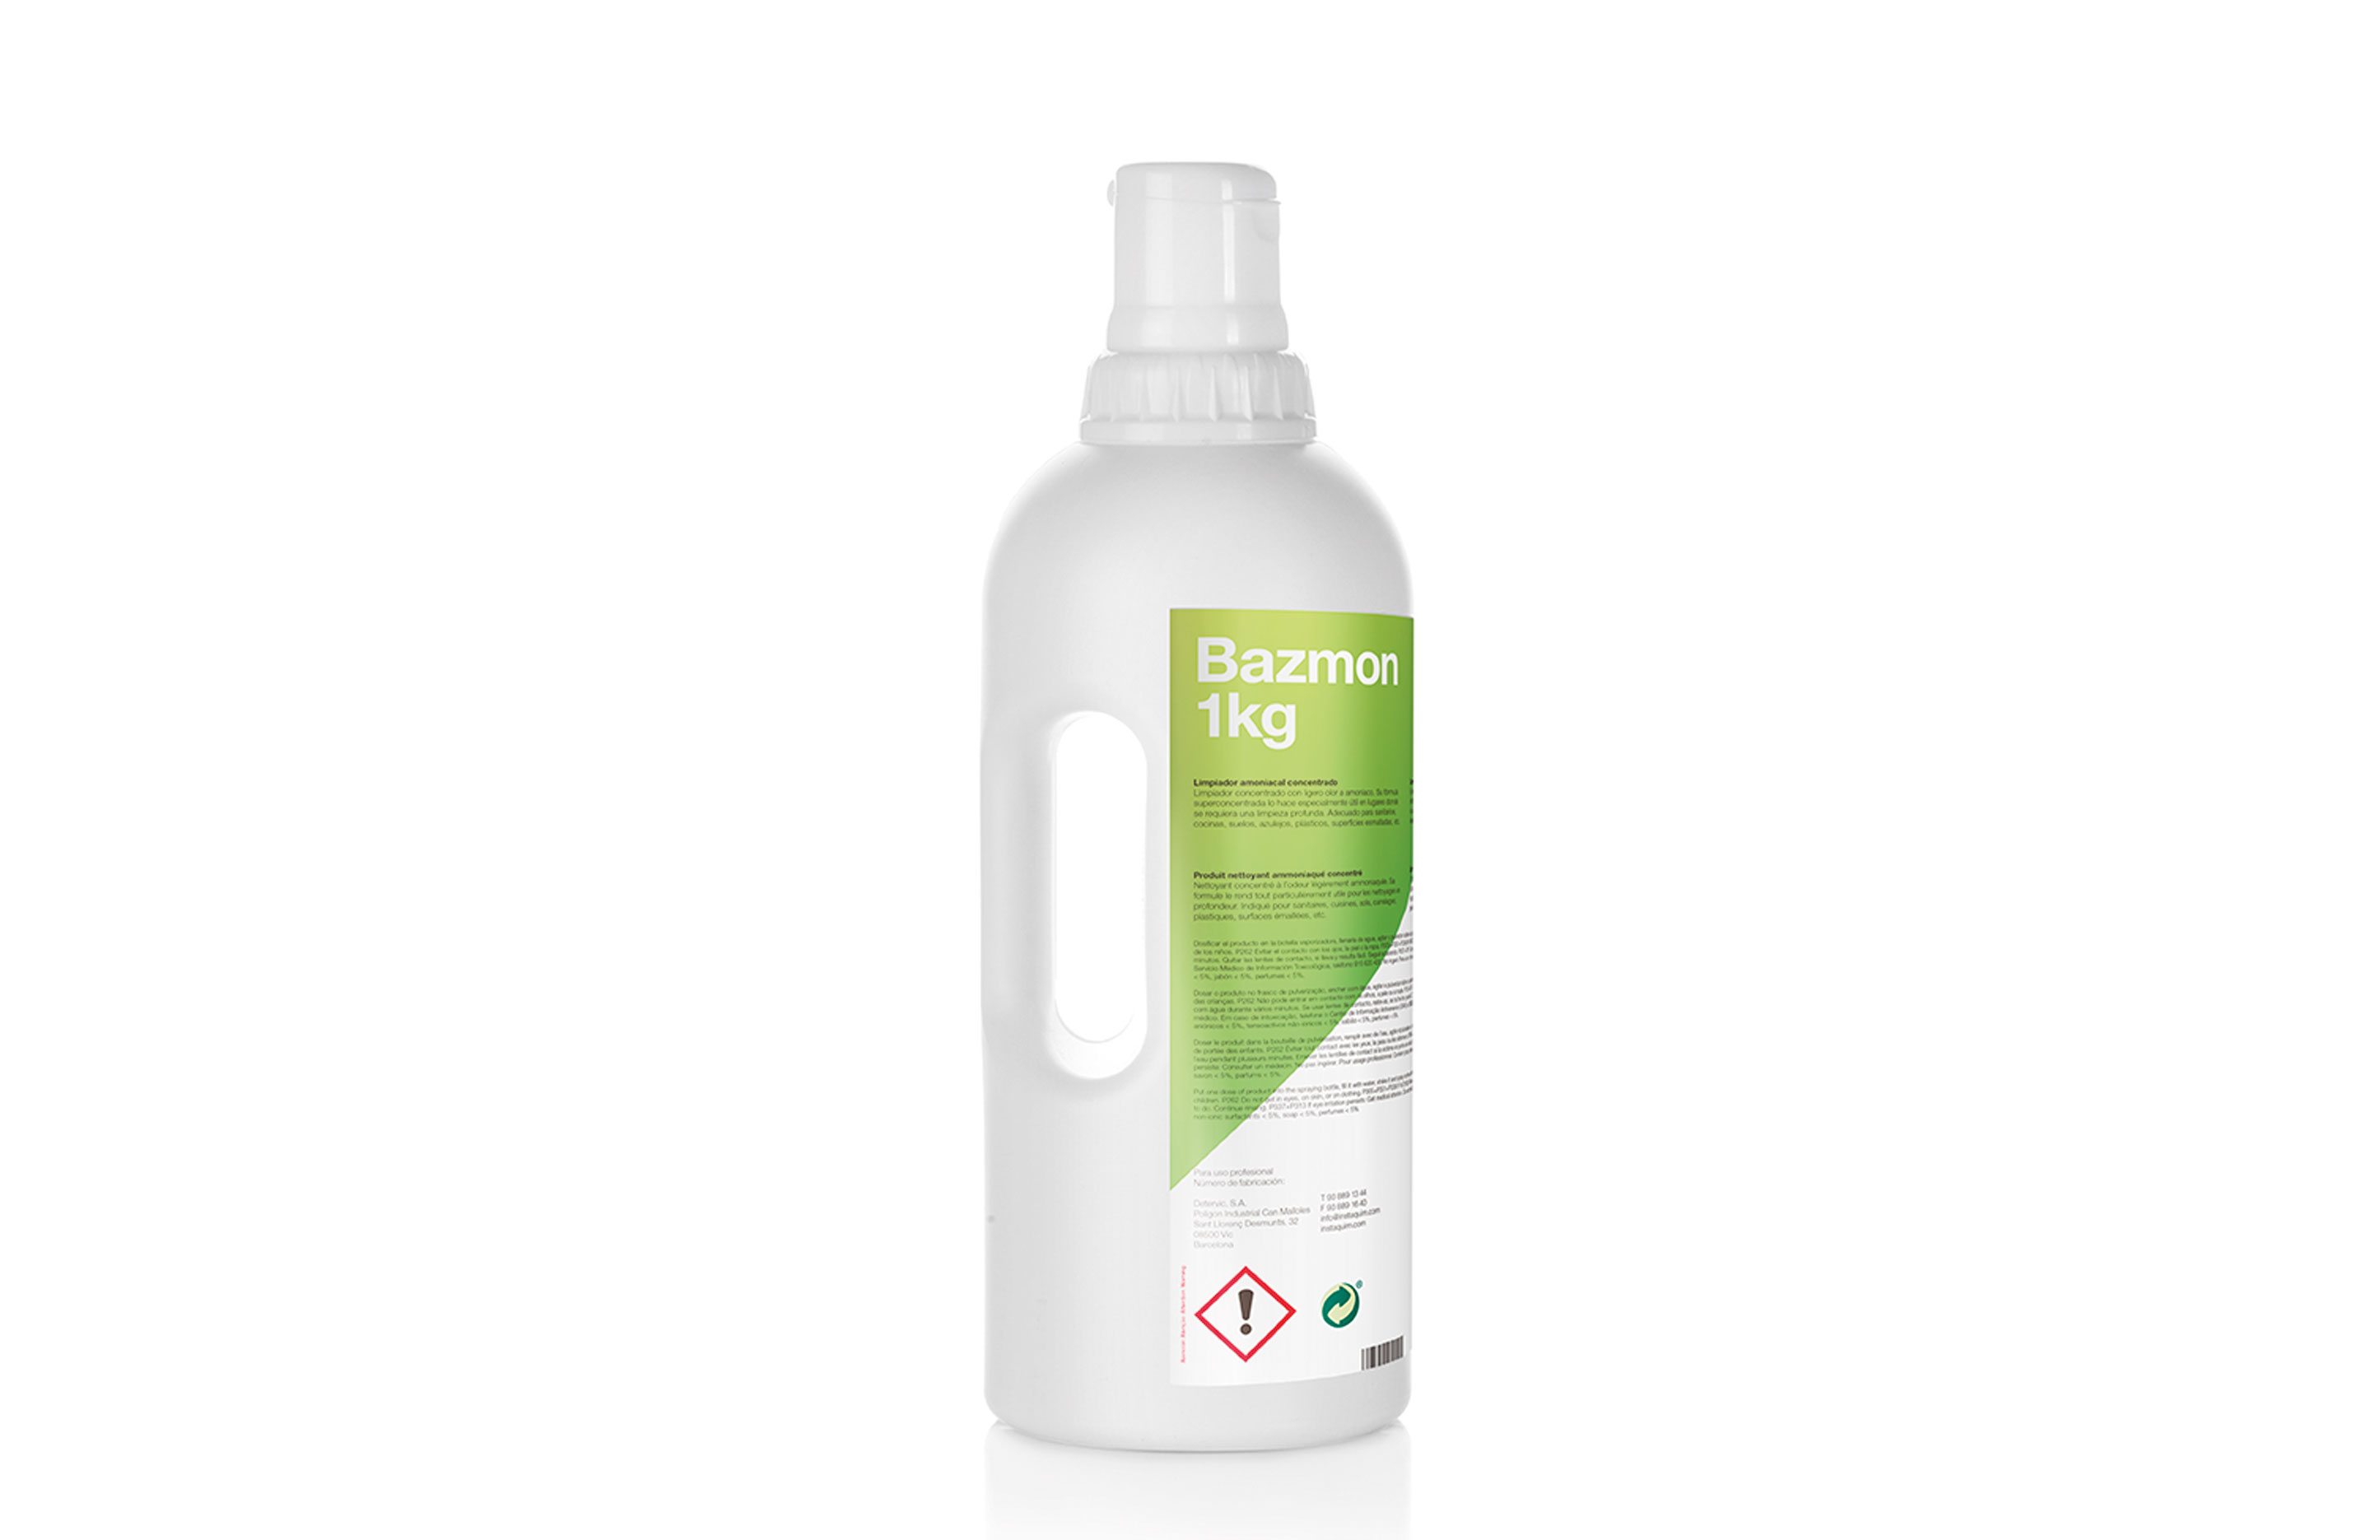 Bazmon, Concentrated ammonia cleaner - Autodosis